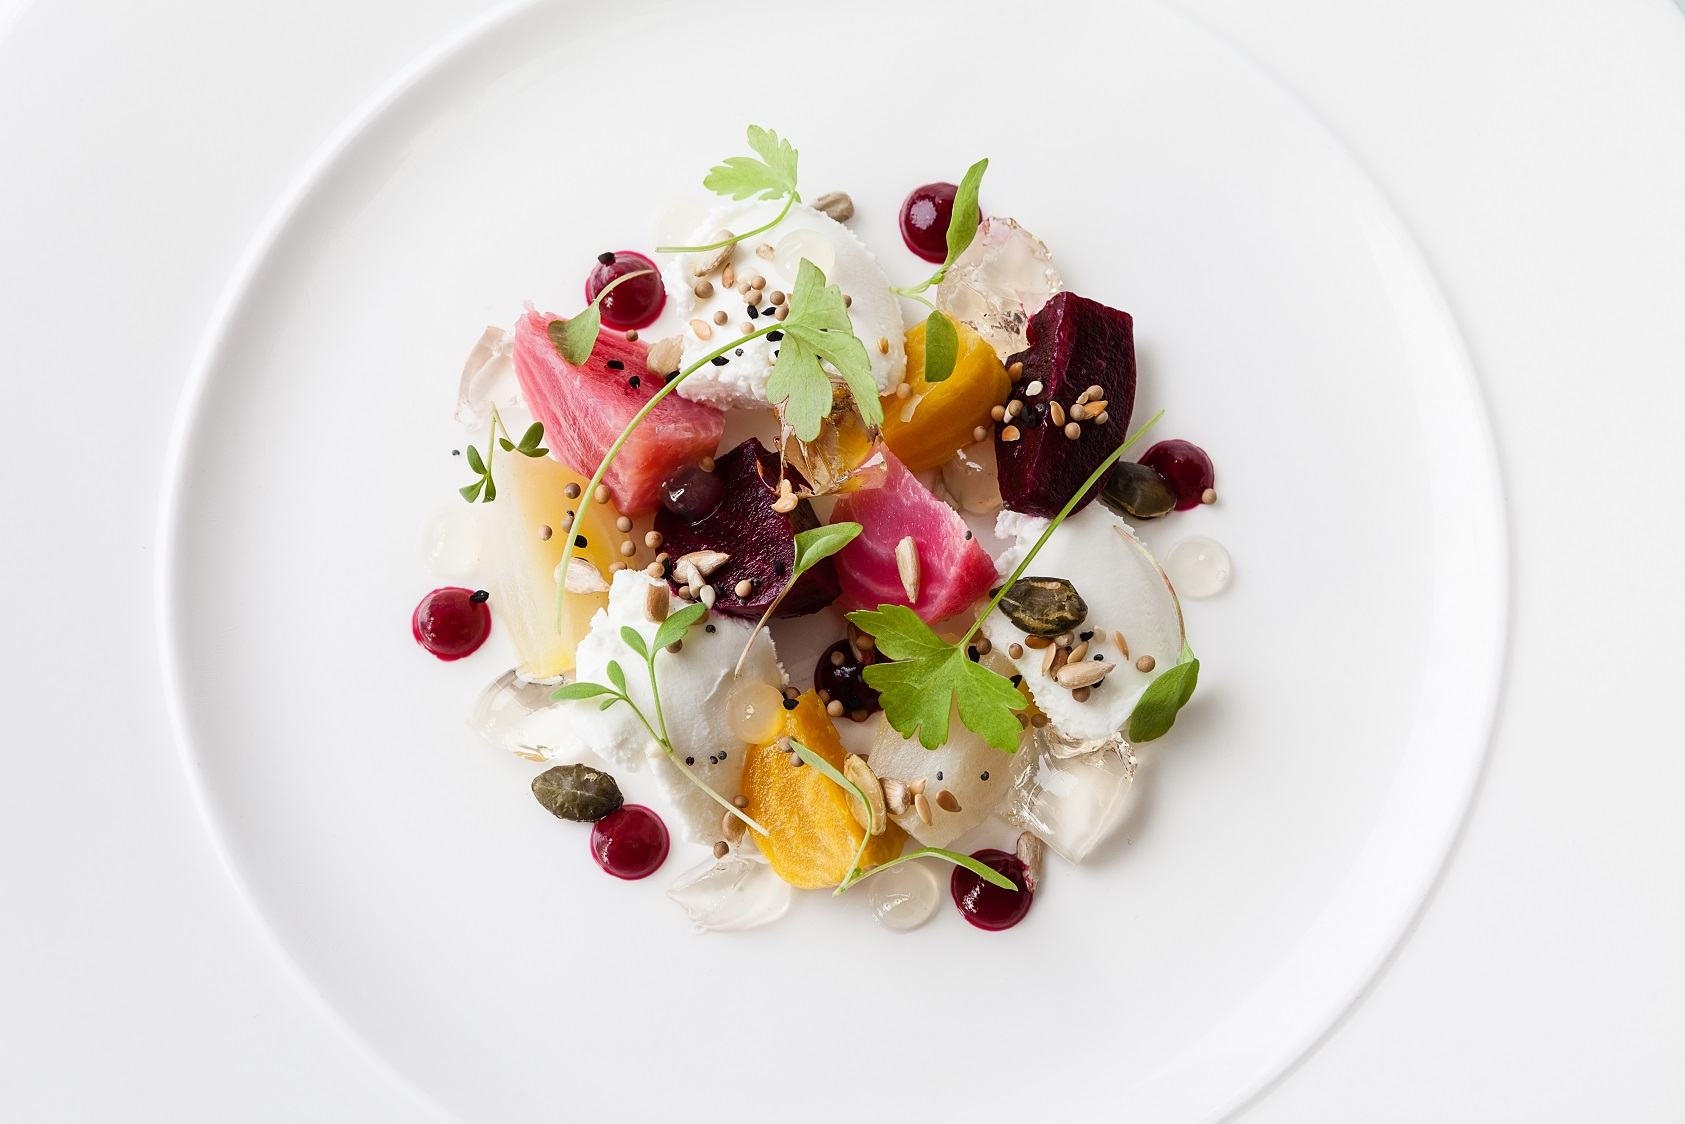 Heritage Garden Beetroot salad with cheese